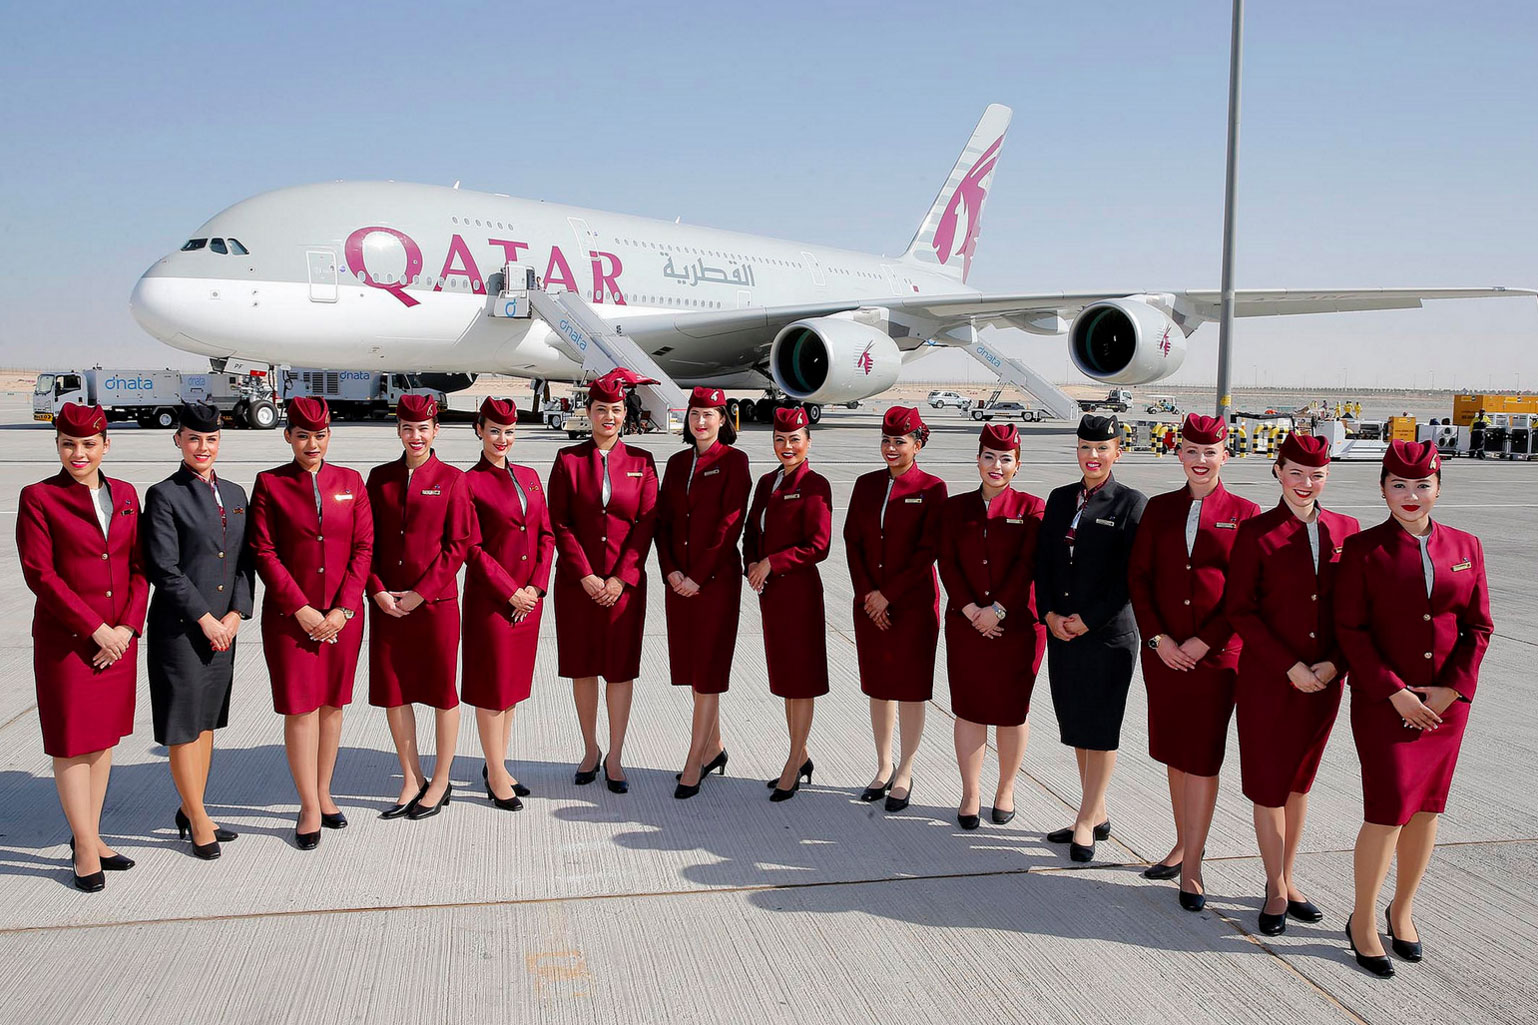 Qatar Airways will start domestic airline in India with 100 planes